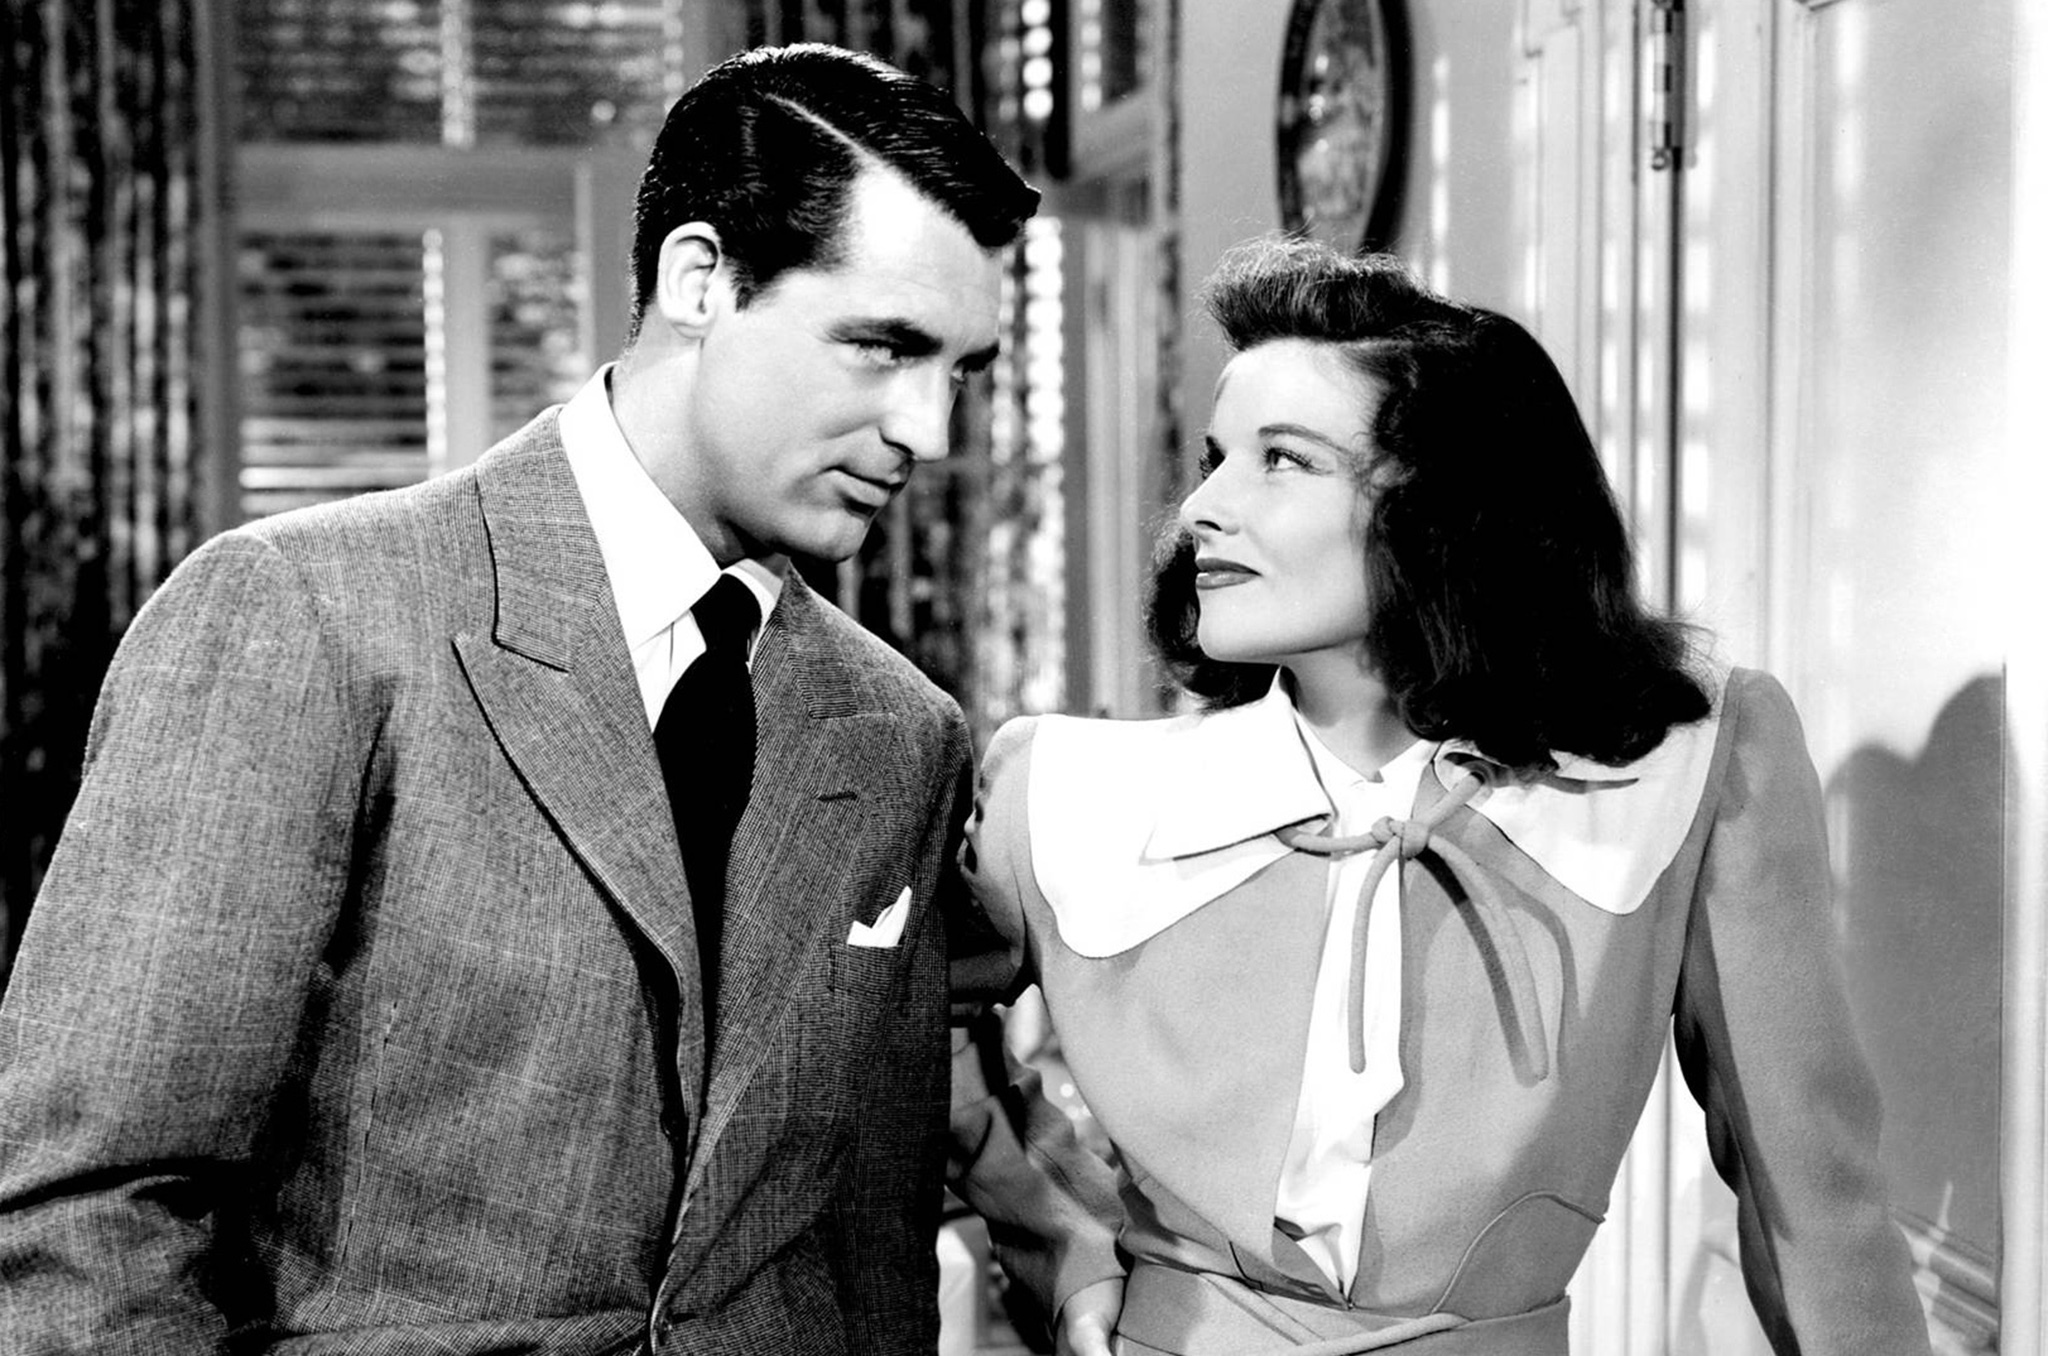 Cary Grant and Katharine Hepburn in The Philadelphia Story